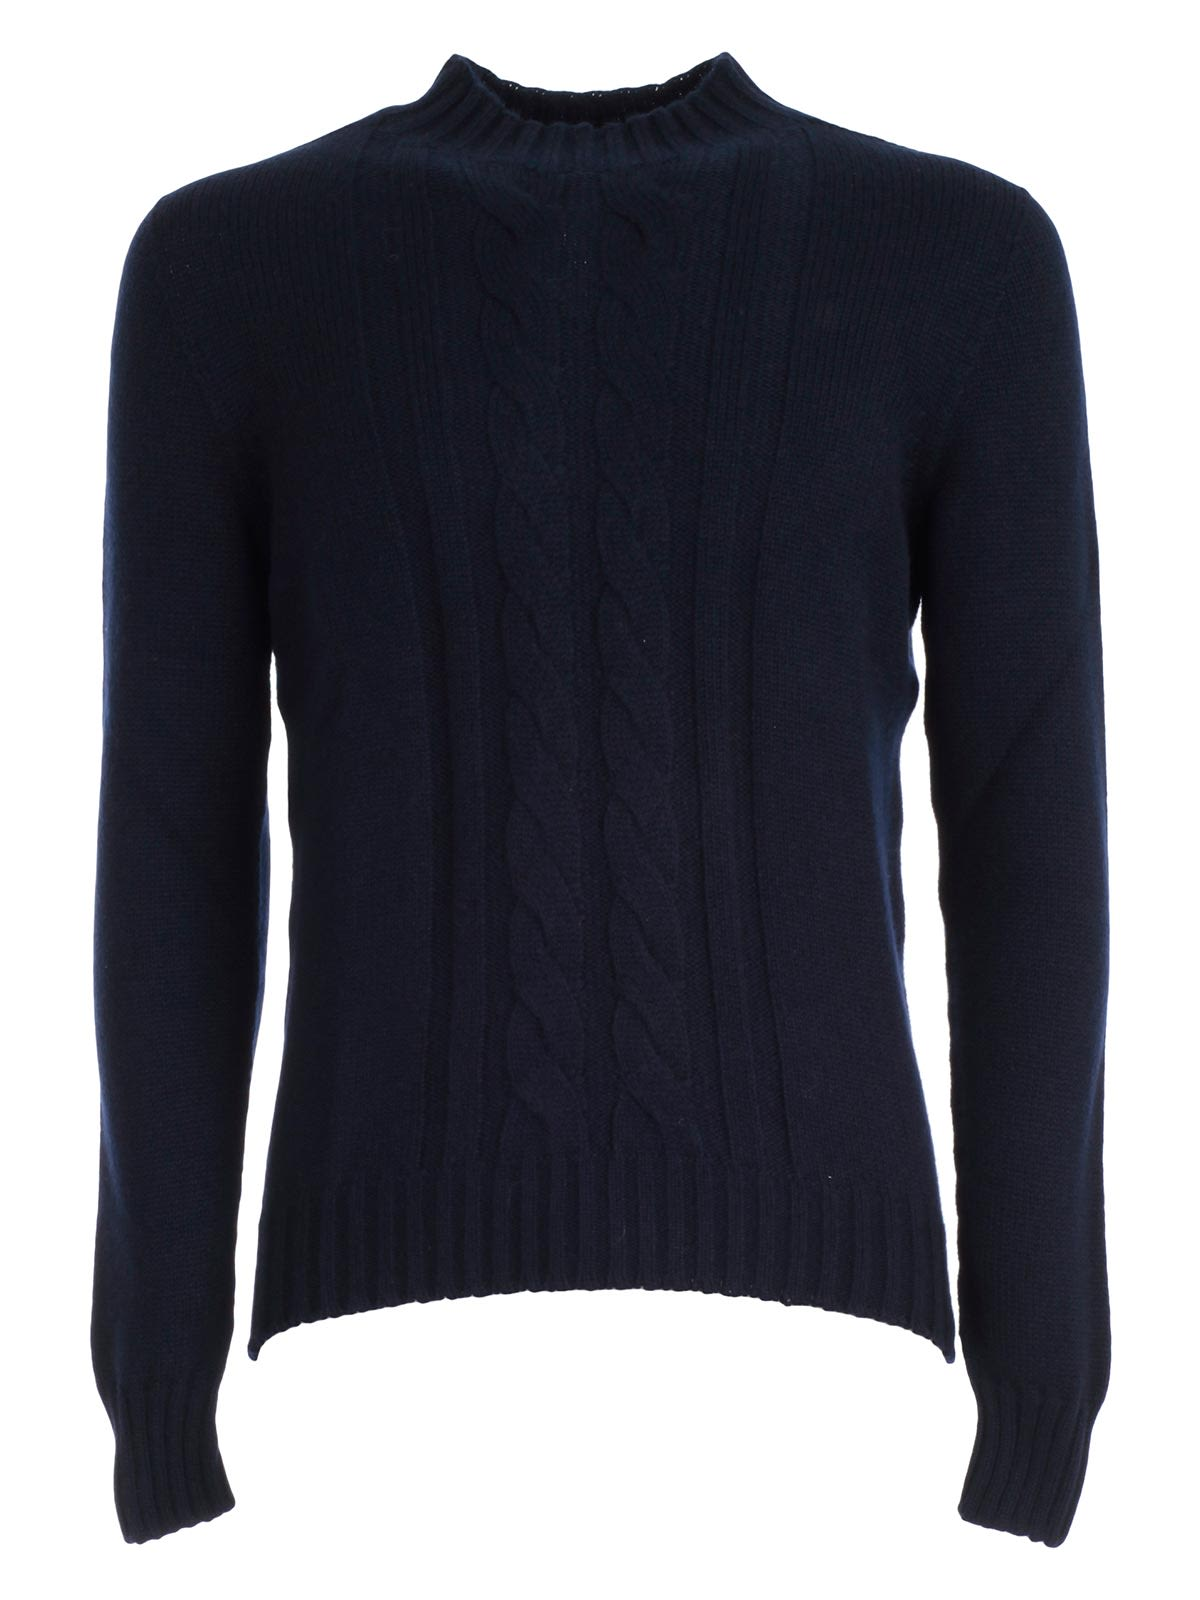 Tagliatore Mock Neck Sweater